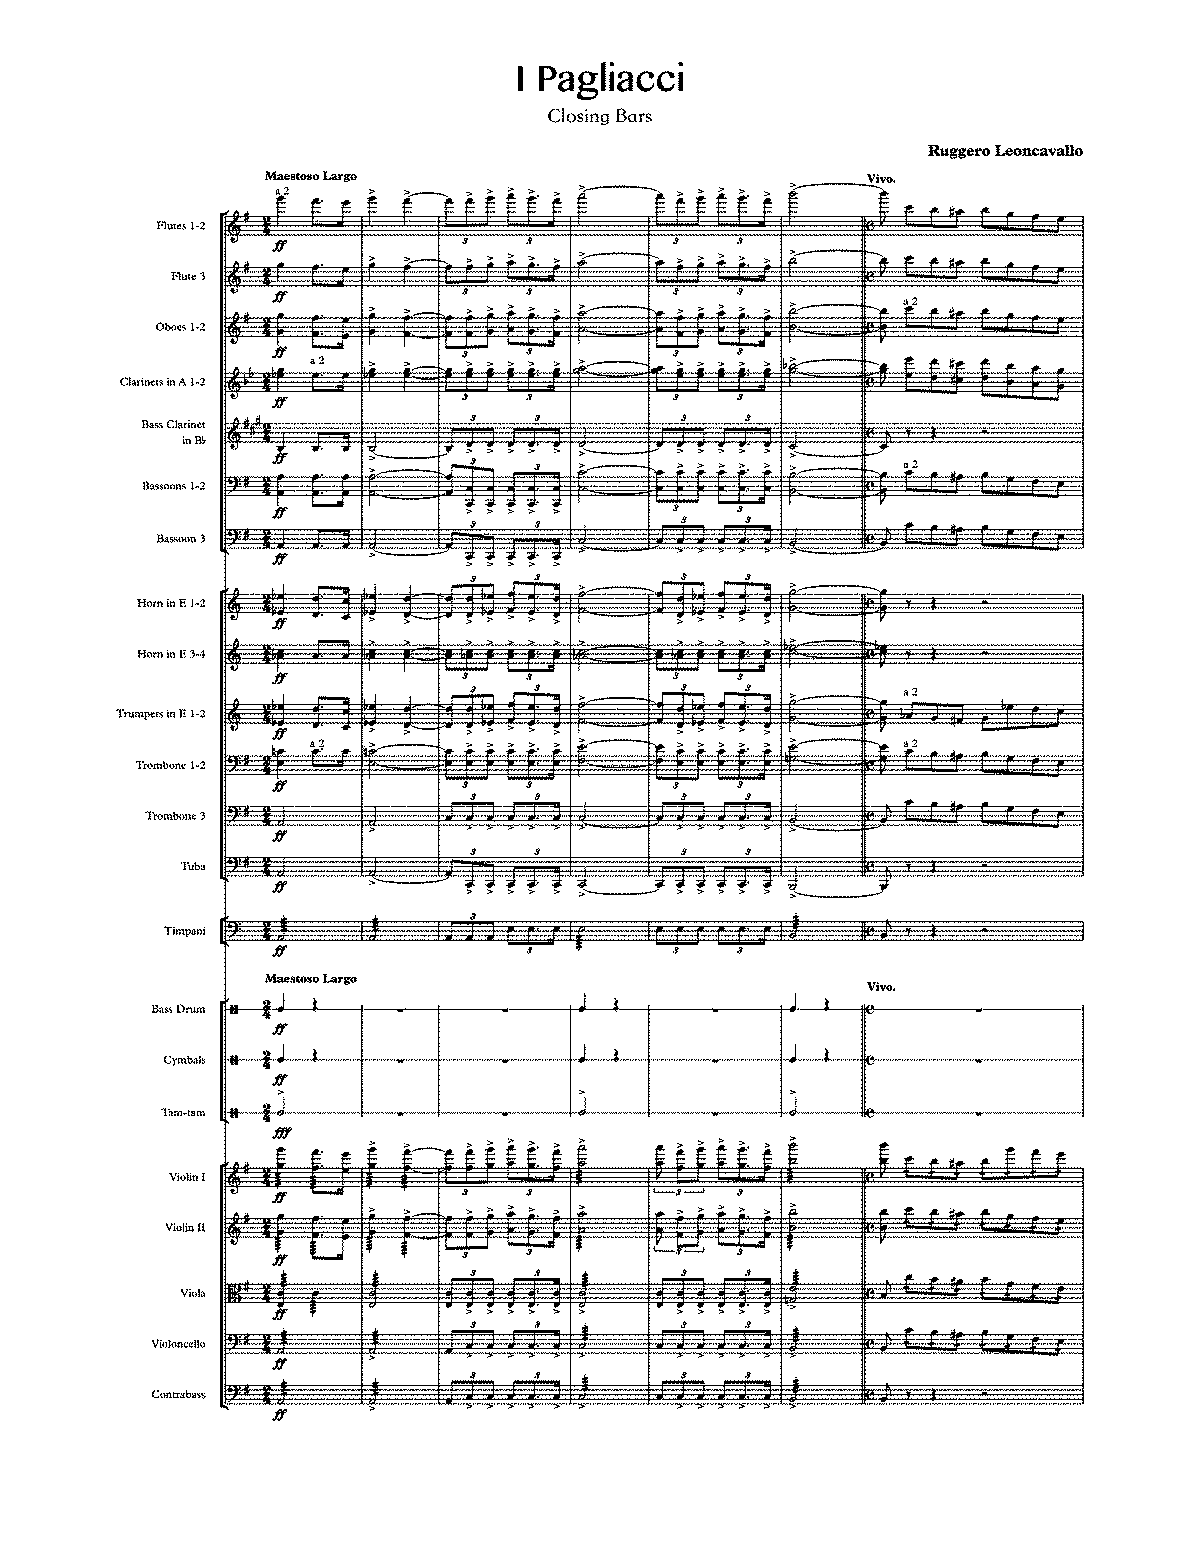 PMLP08597-Pagliacci-Final Bars - Full Score.pdf